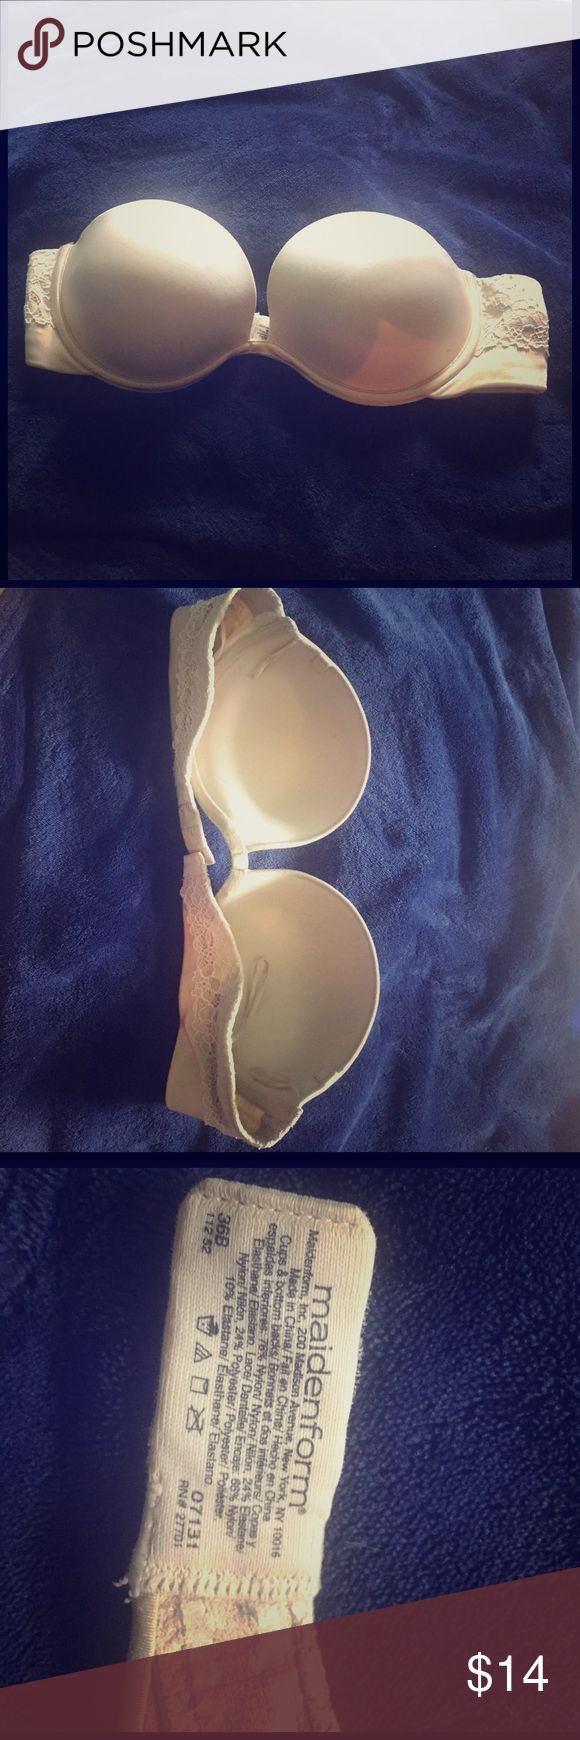 Strapless Bra It has hardly been used you can add straps on and it has a stick material on the back by the hooks so it won't fall down it will stay in place.  Accepting offers Maidenform Intimates & Sleepwear Bras